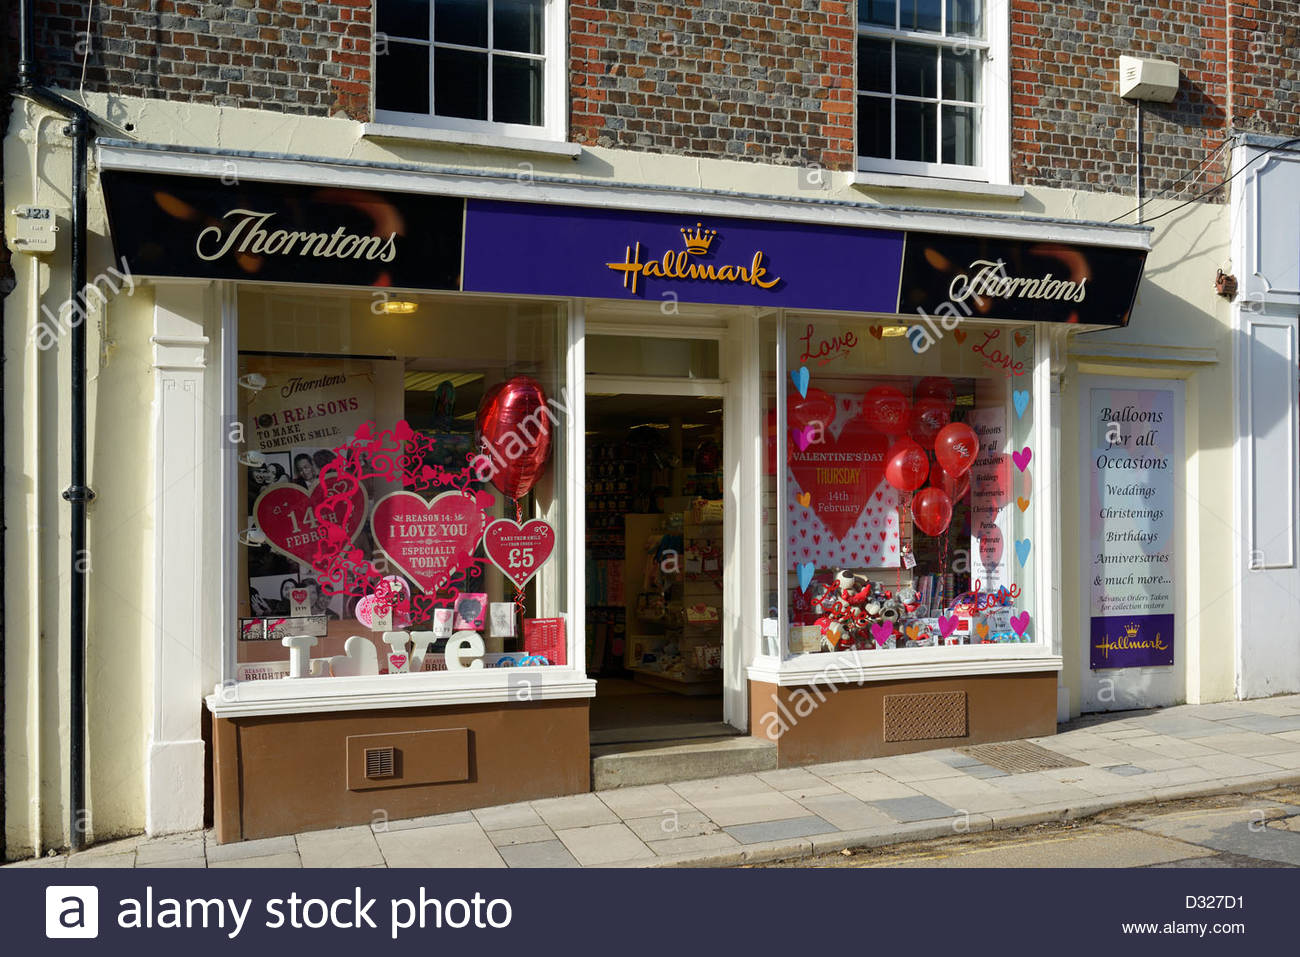 Hallmark and Thorntons cards and gifts shop, Blandford Forum, Dorset England